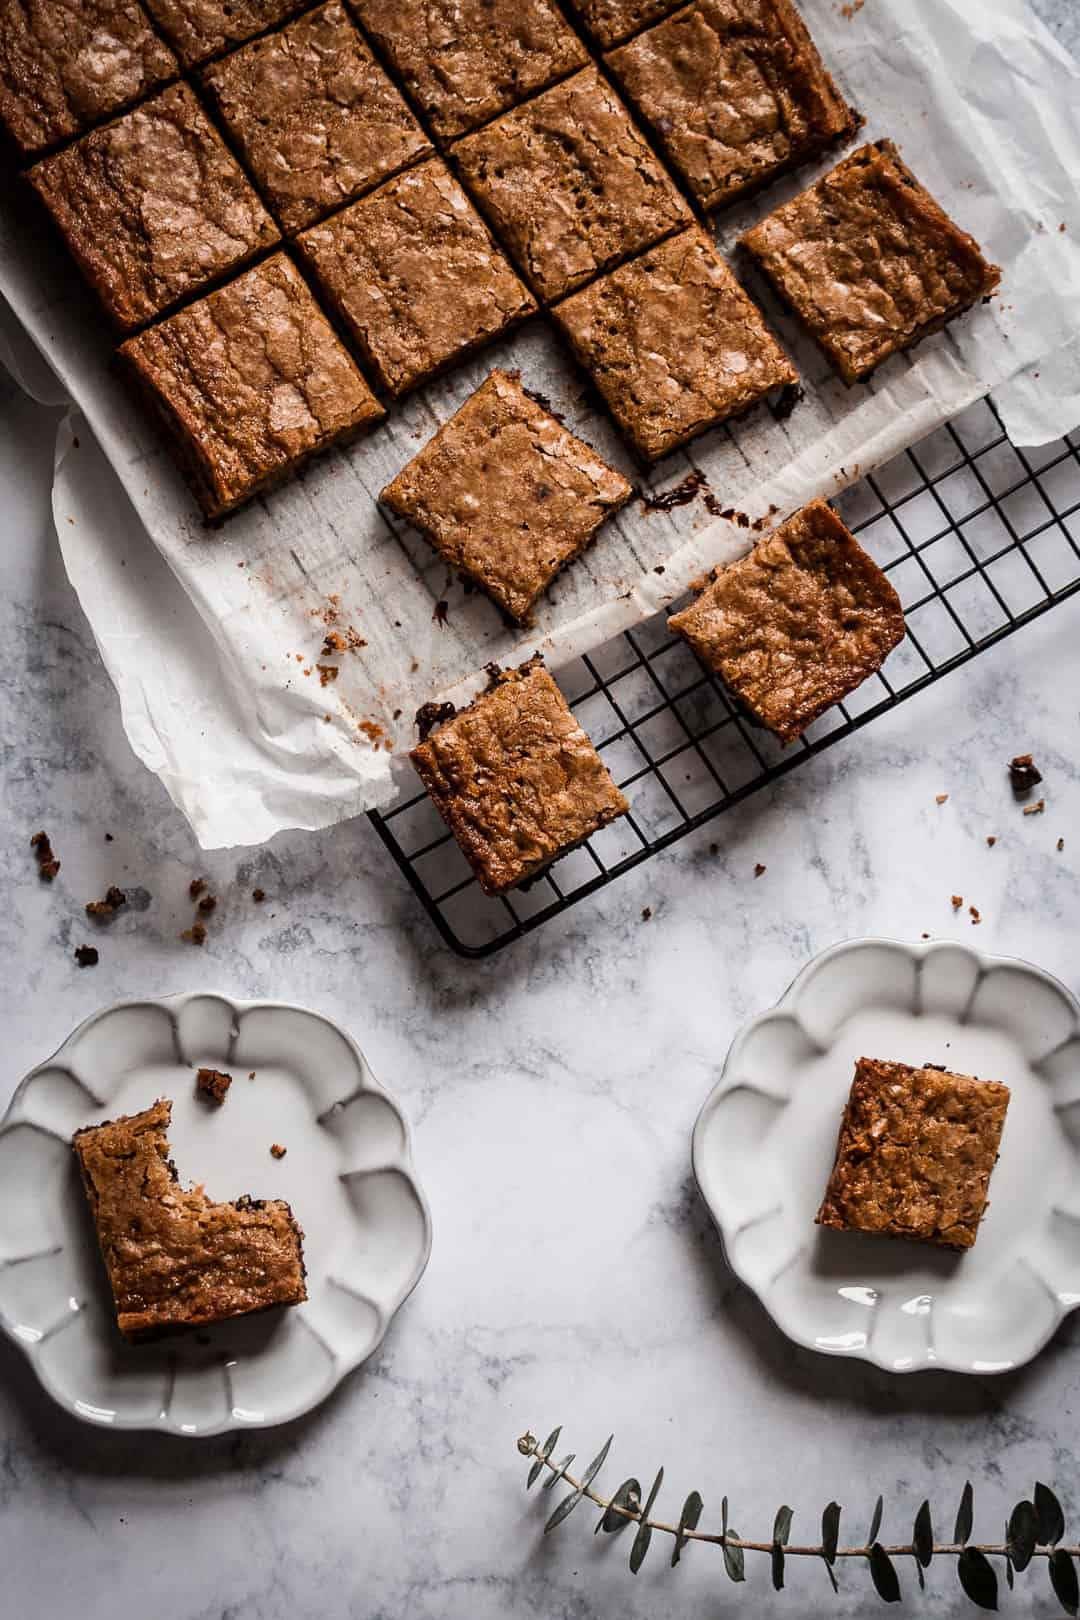 butterscotch dark chocolate bars on a cooling rack on a marble countertop